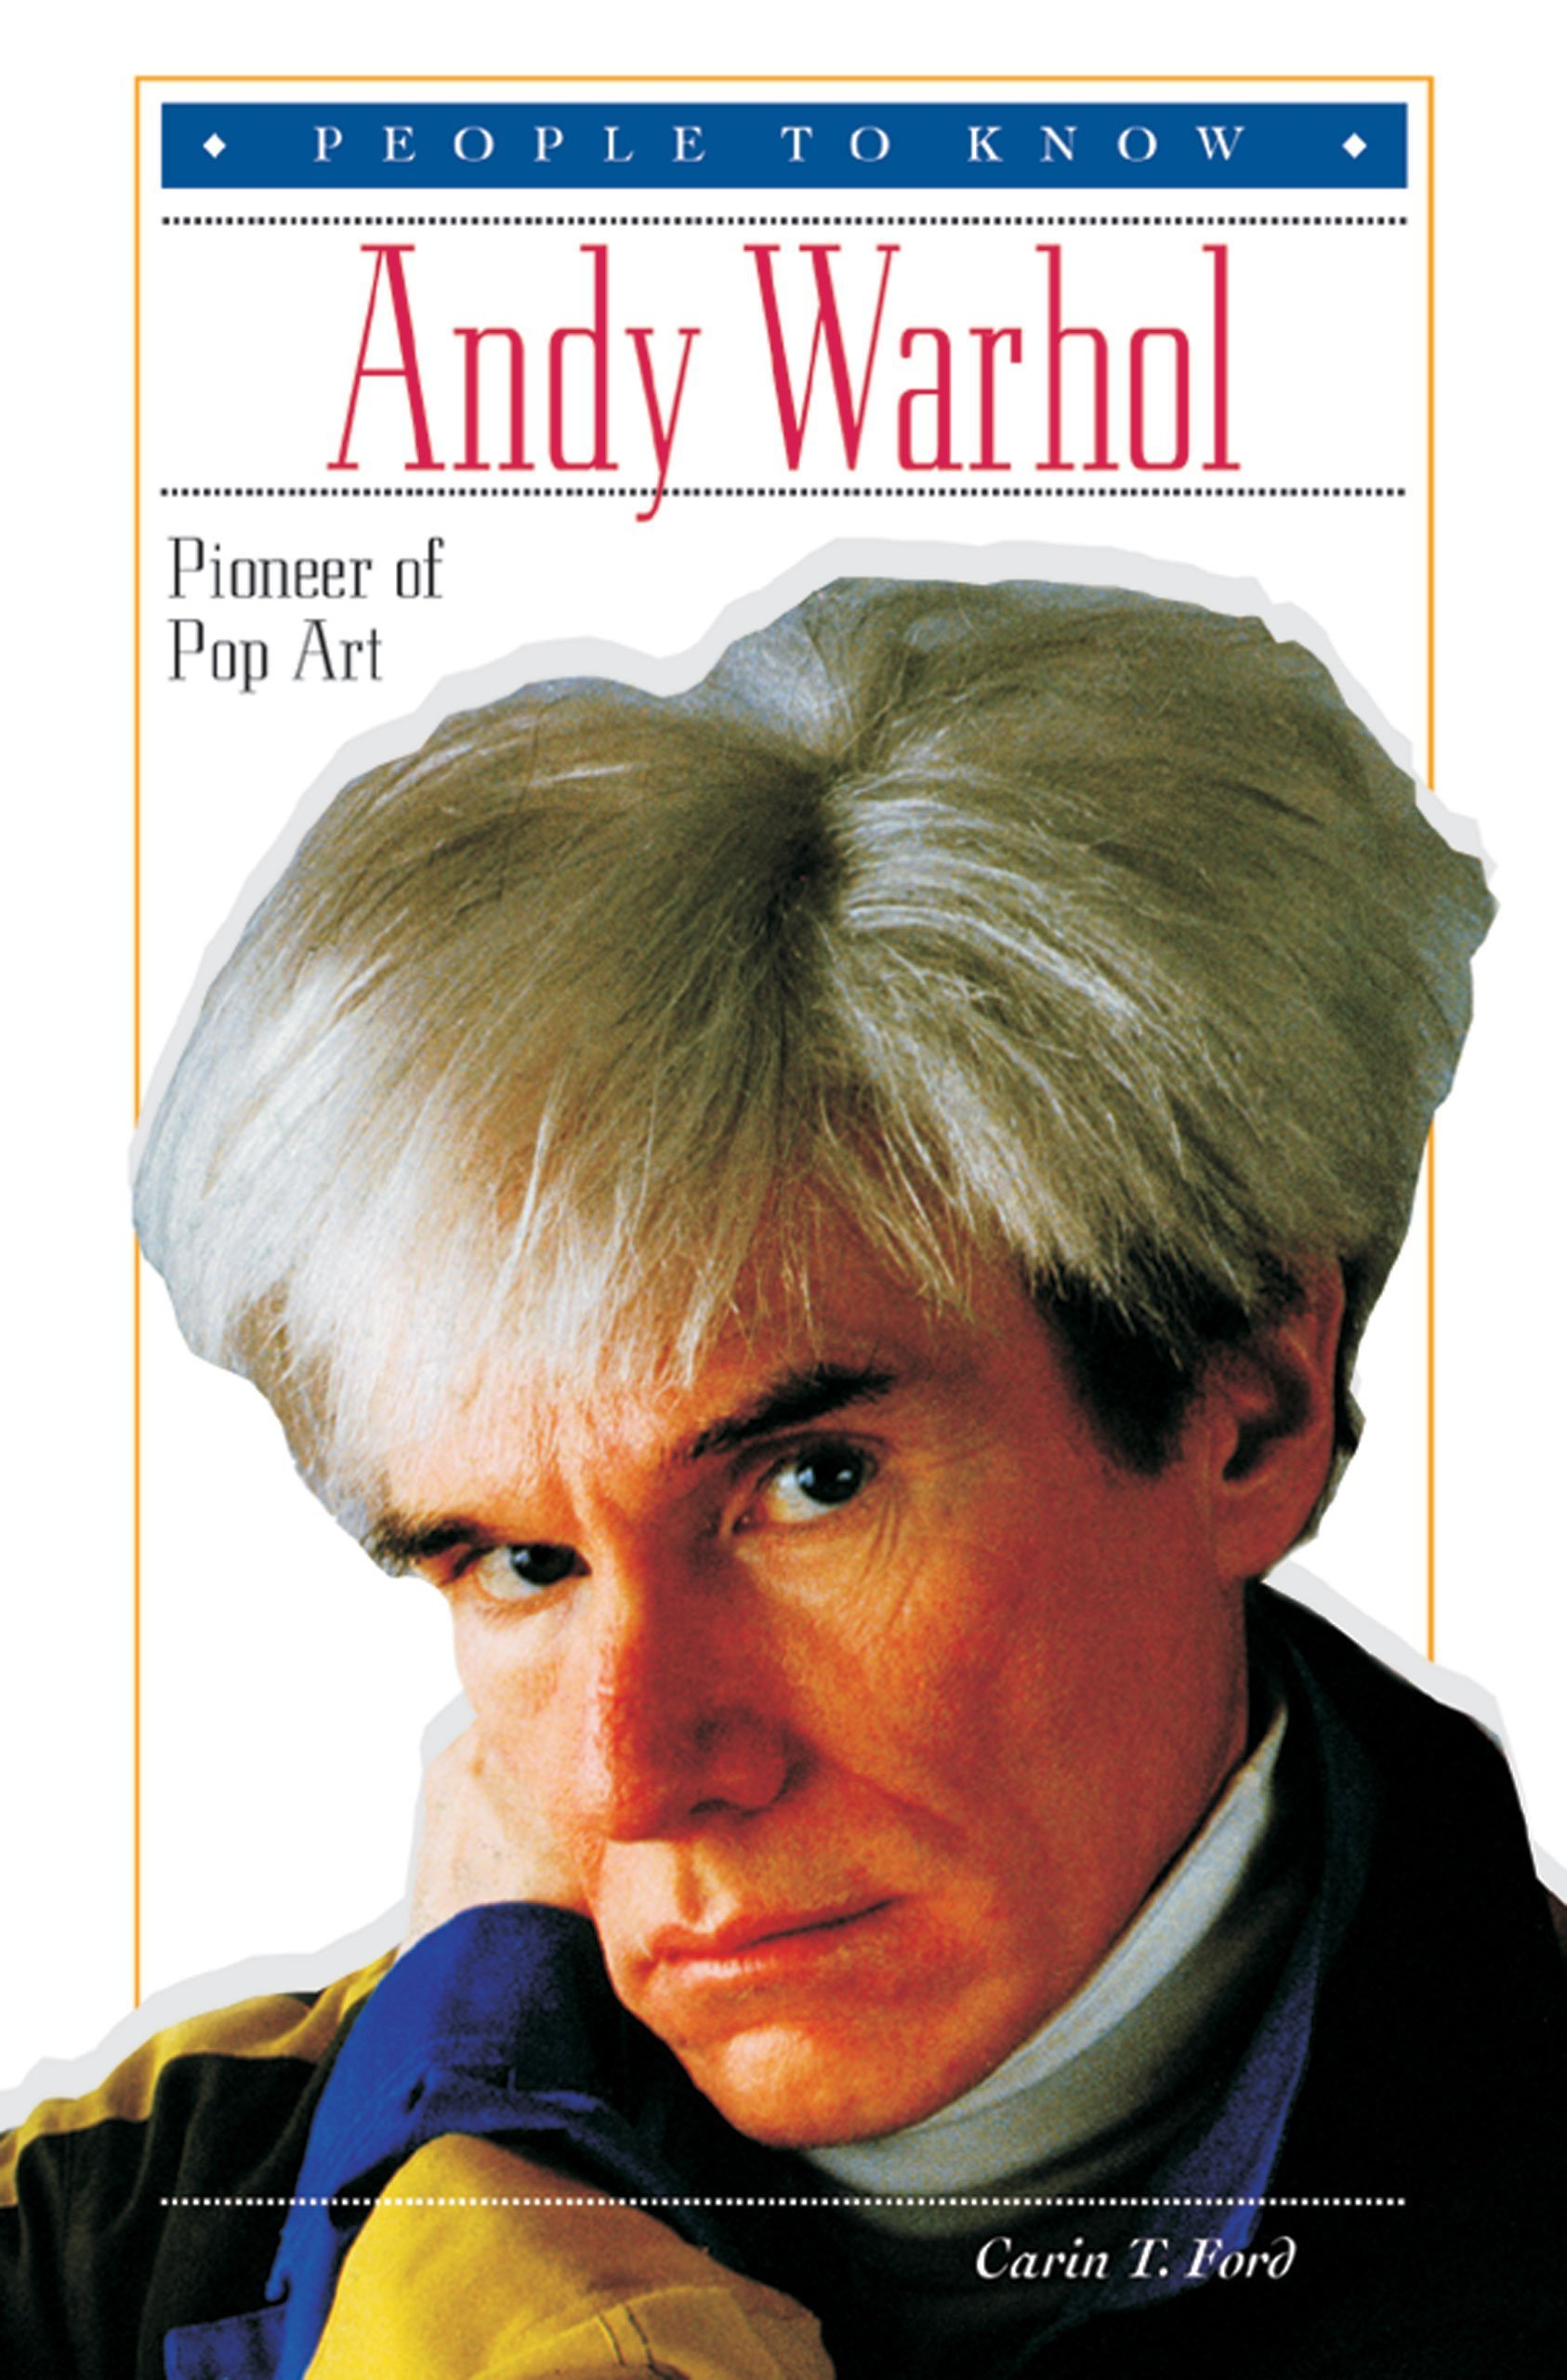 Andy Warhol: Pioneer of Pop Art (People to Know) ebook